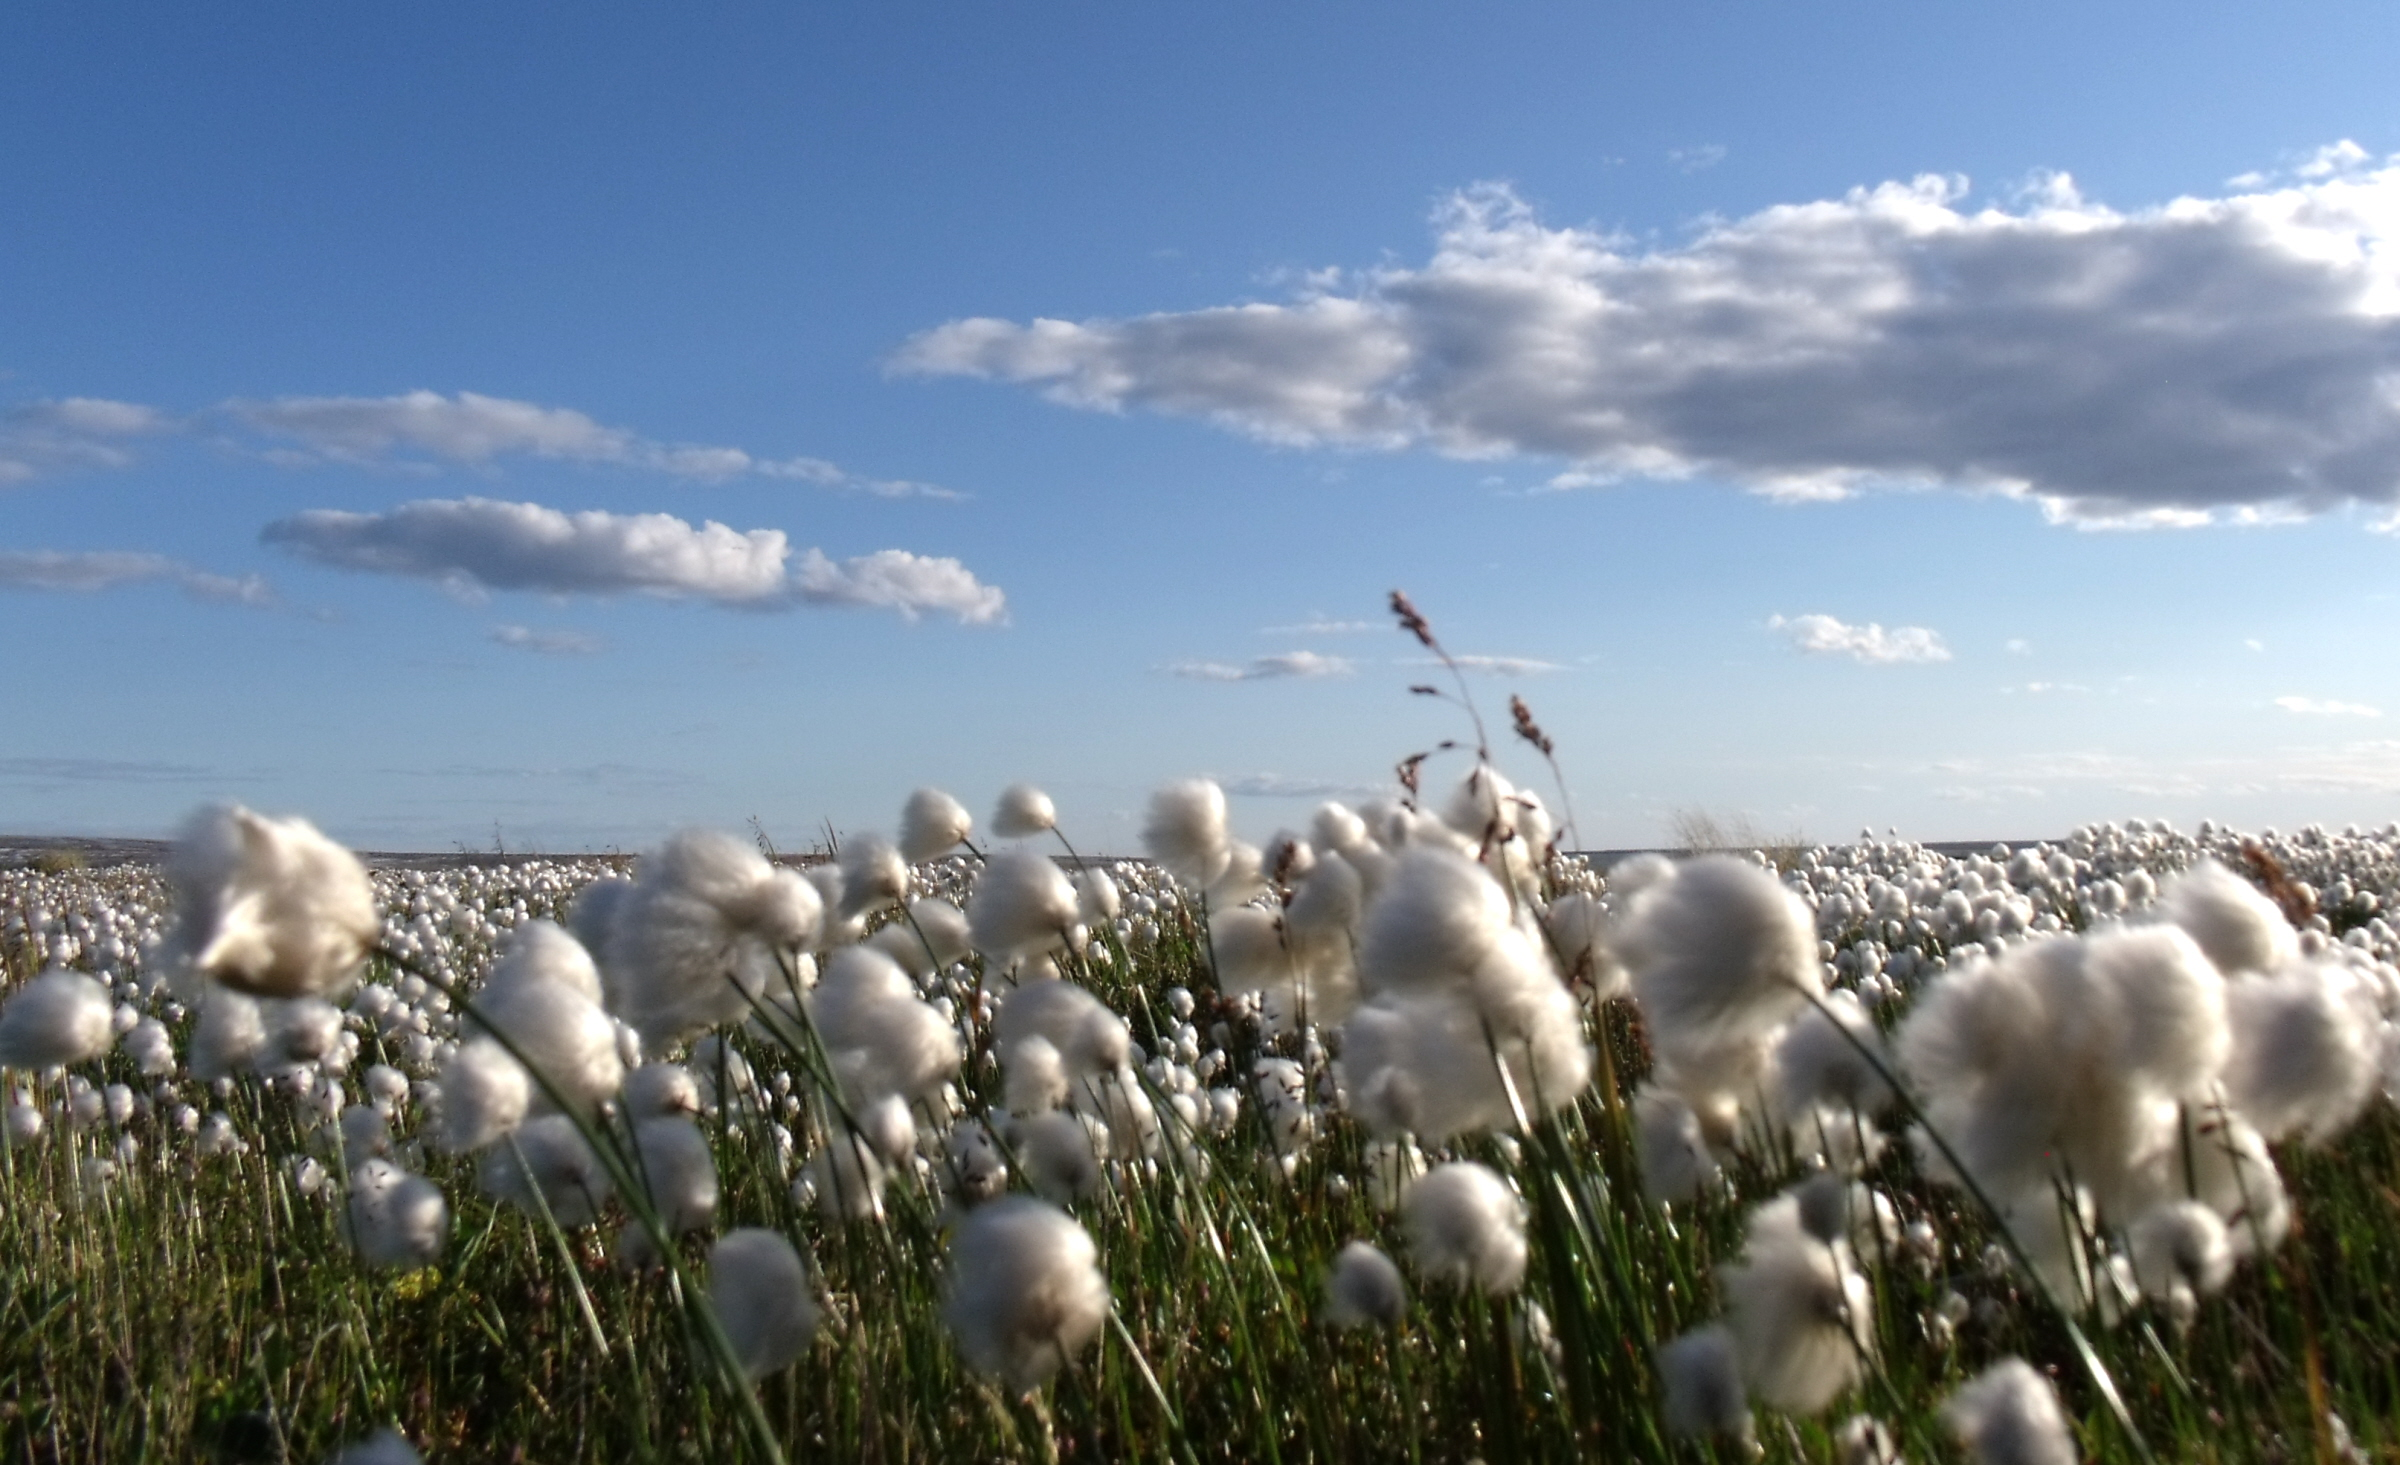 Cotton is derived from the fibers of a cotton plant and are used in the production of cotton cloth. Cotton plants thrive in warm climates, especially in the Southeast United States. Cotton is used more than any other fiber, and is the leading cash crop in the United States.